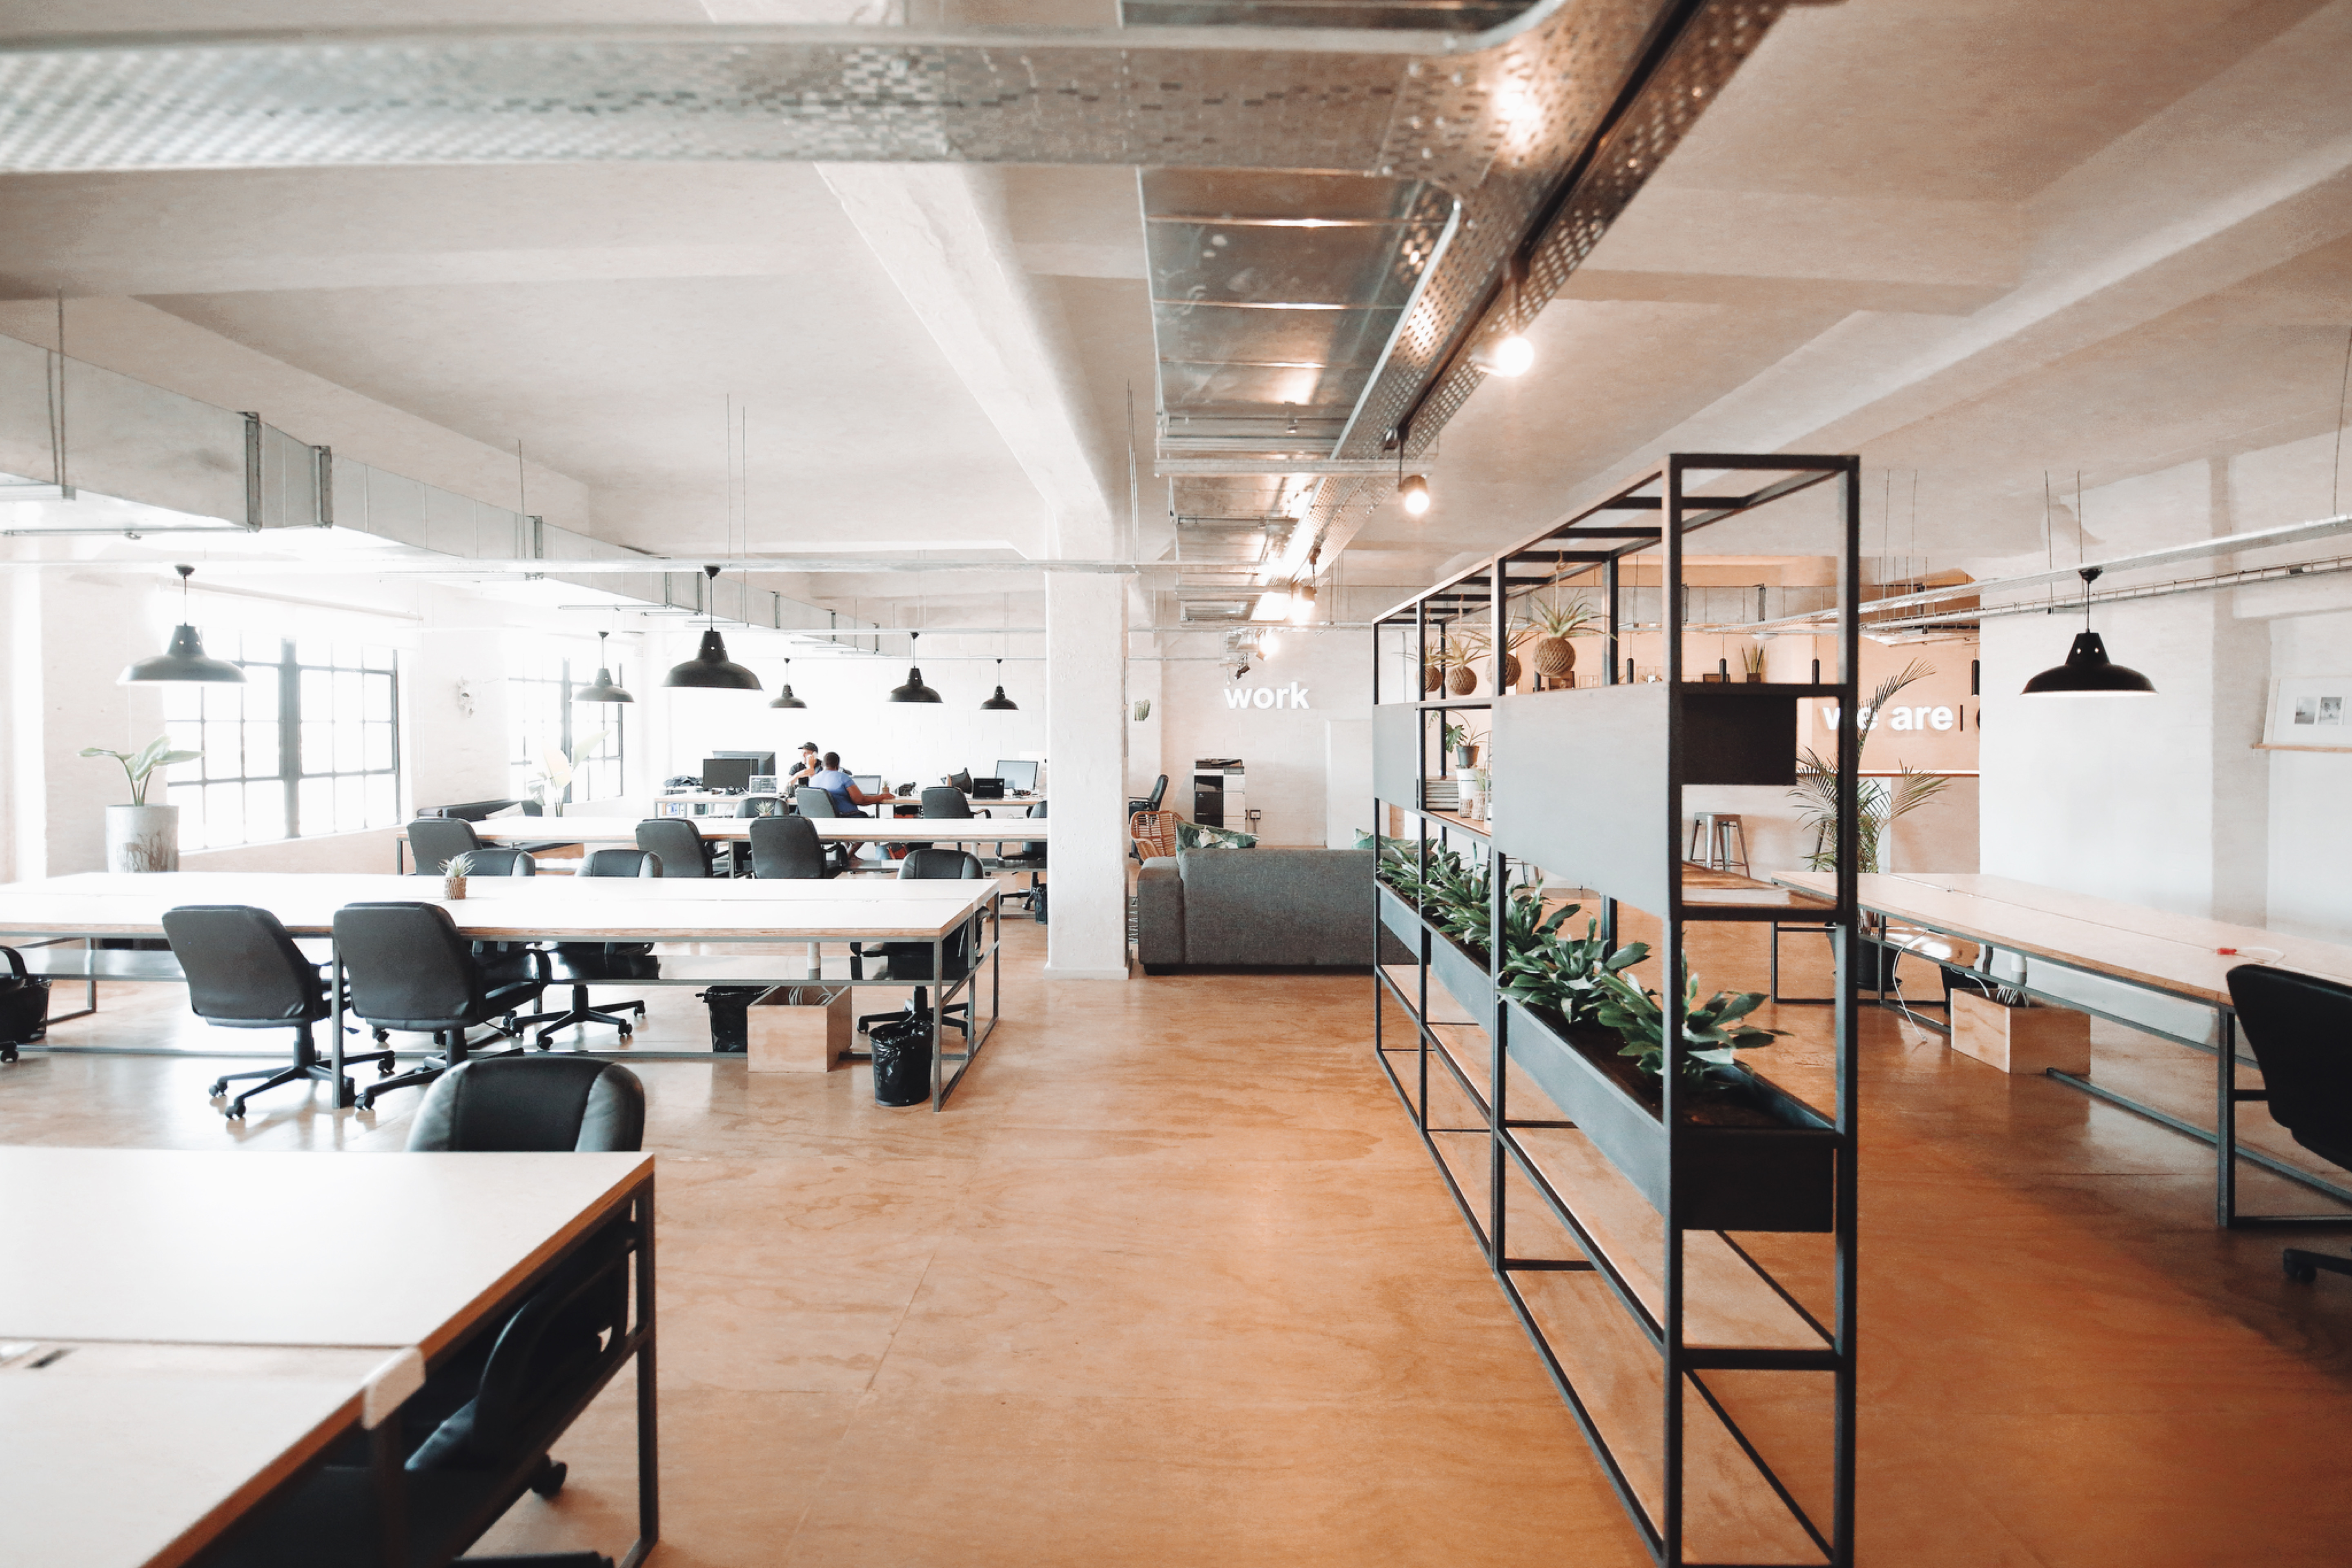 Co-working spaces –  What makes them worth the hype?